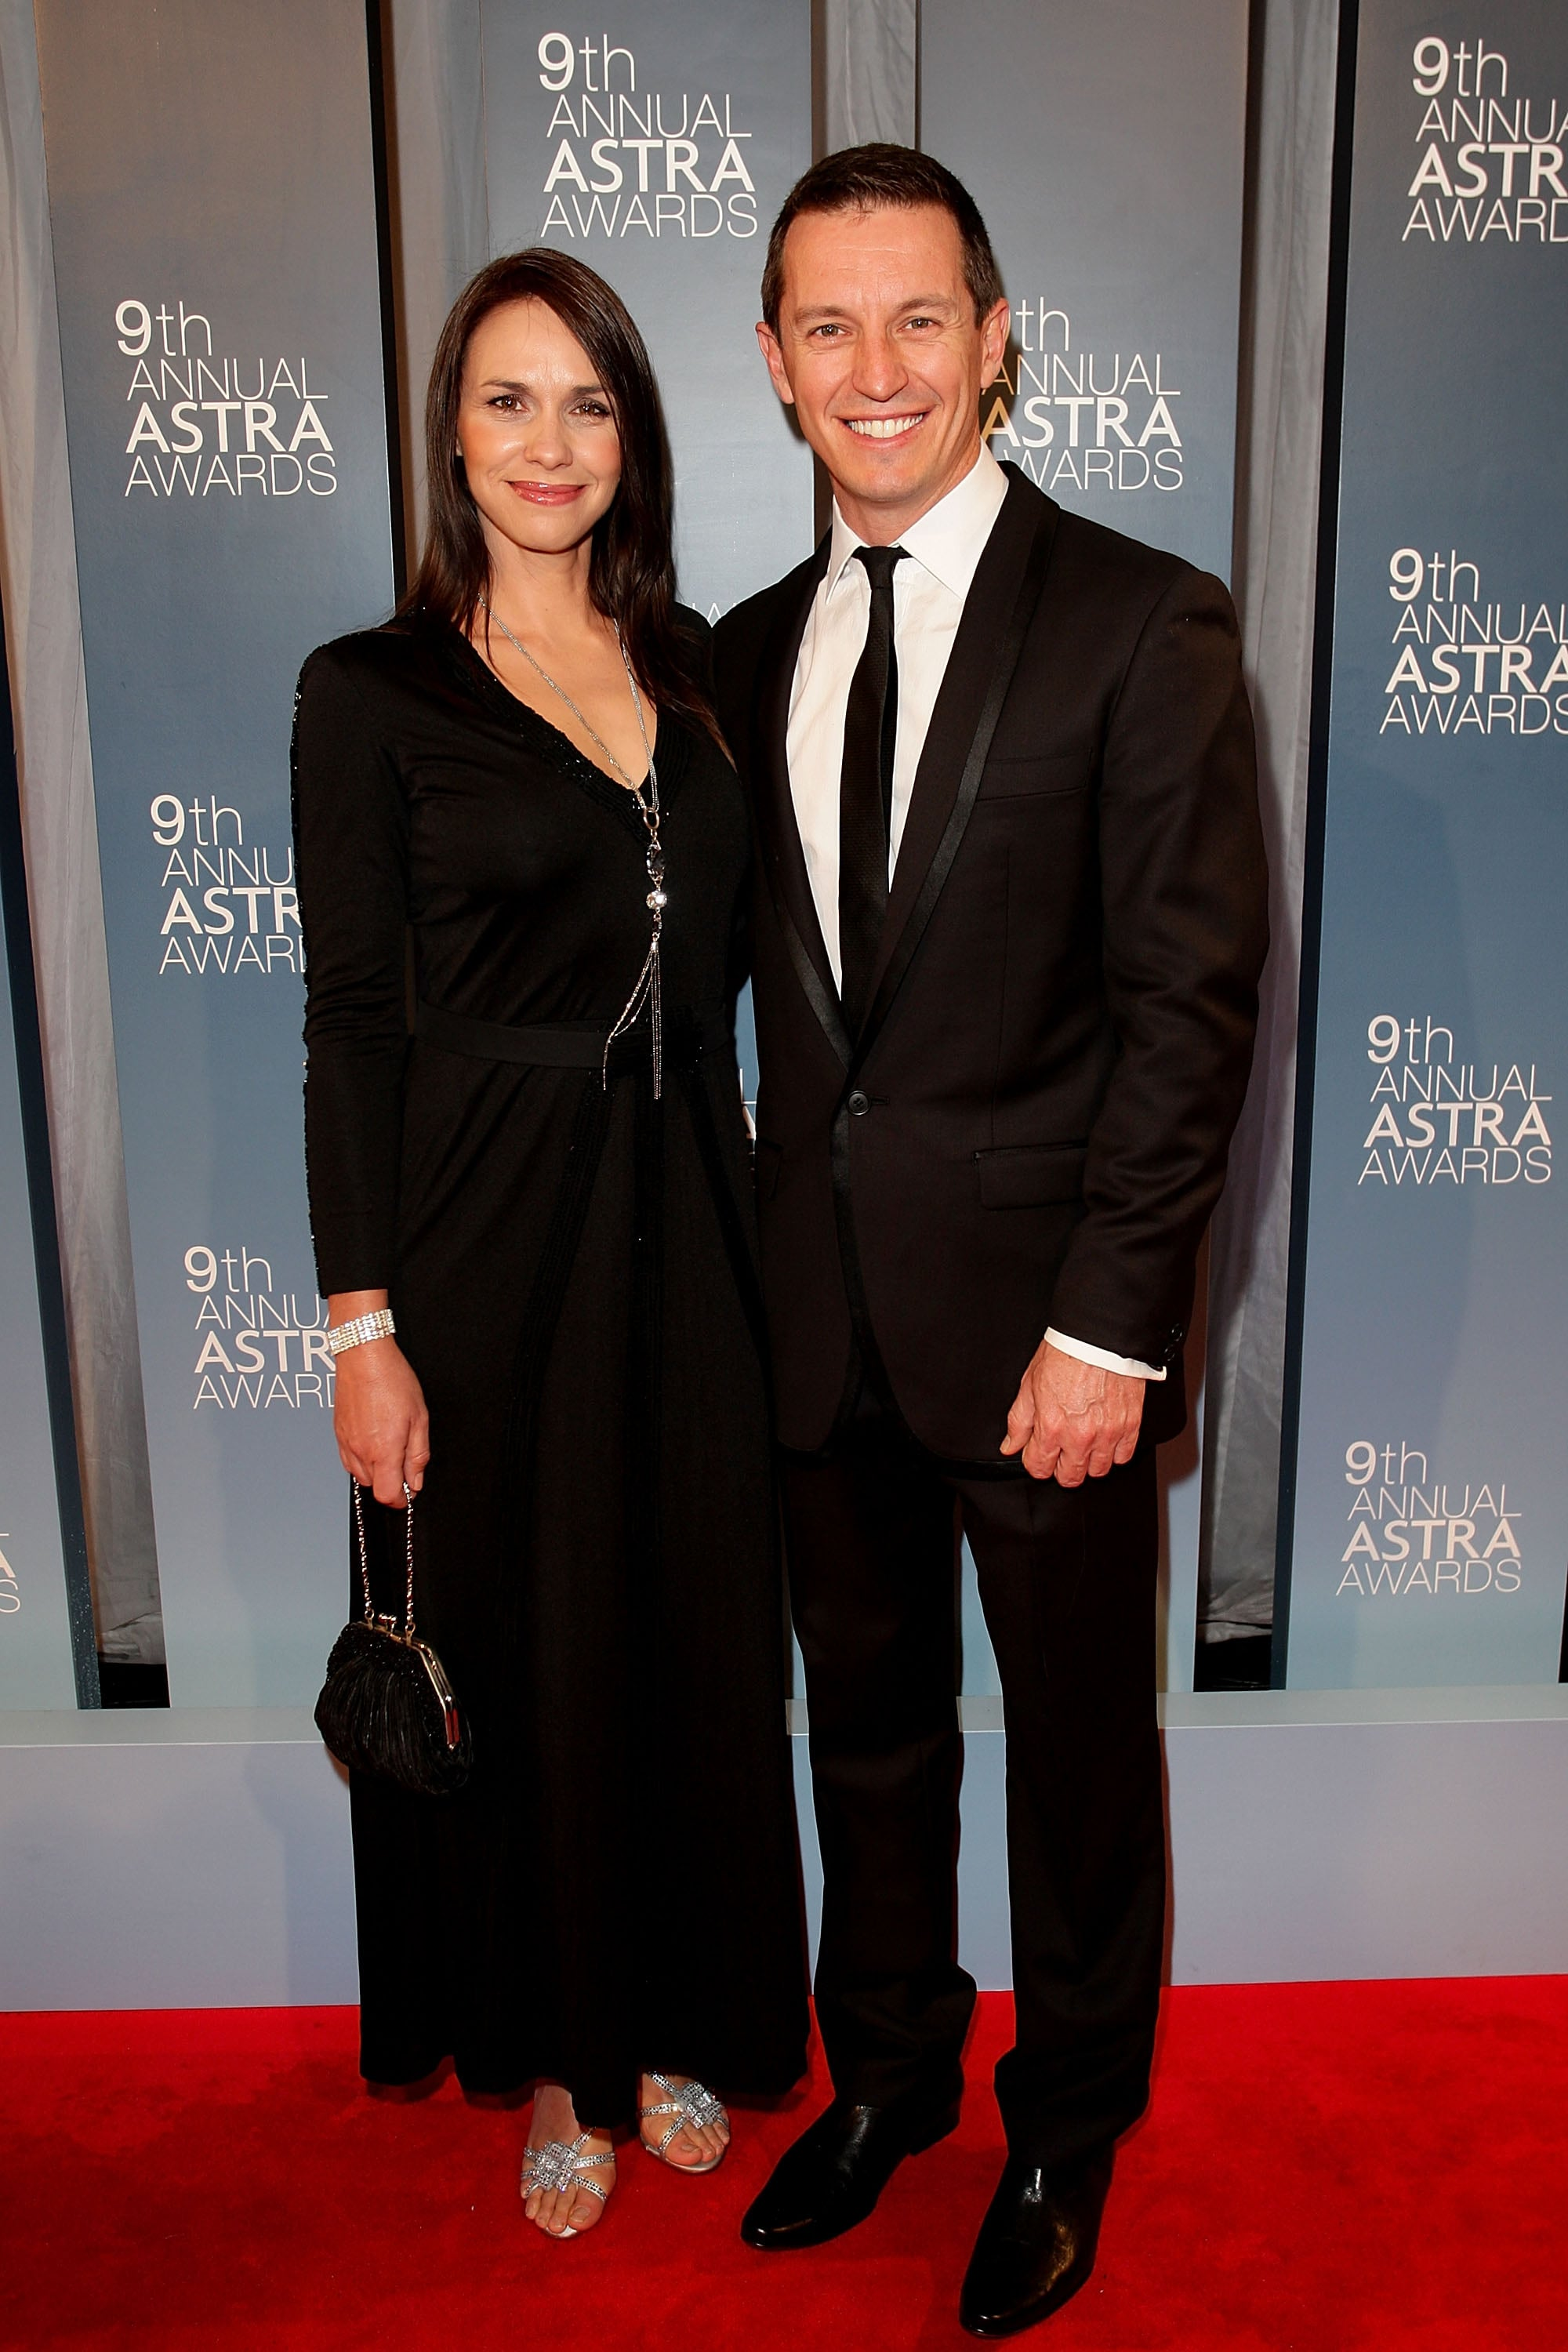 Tasma Walton and Rove McManus